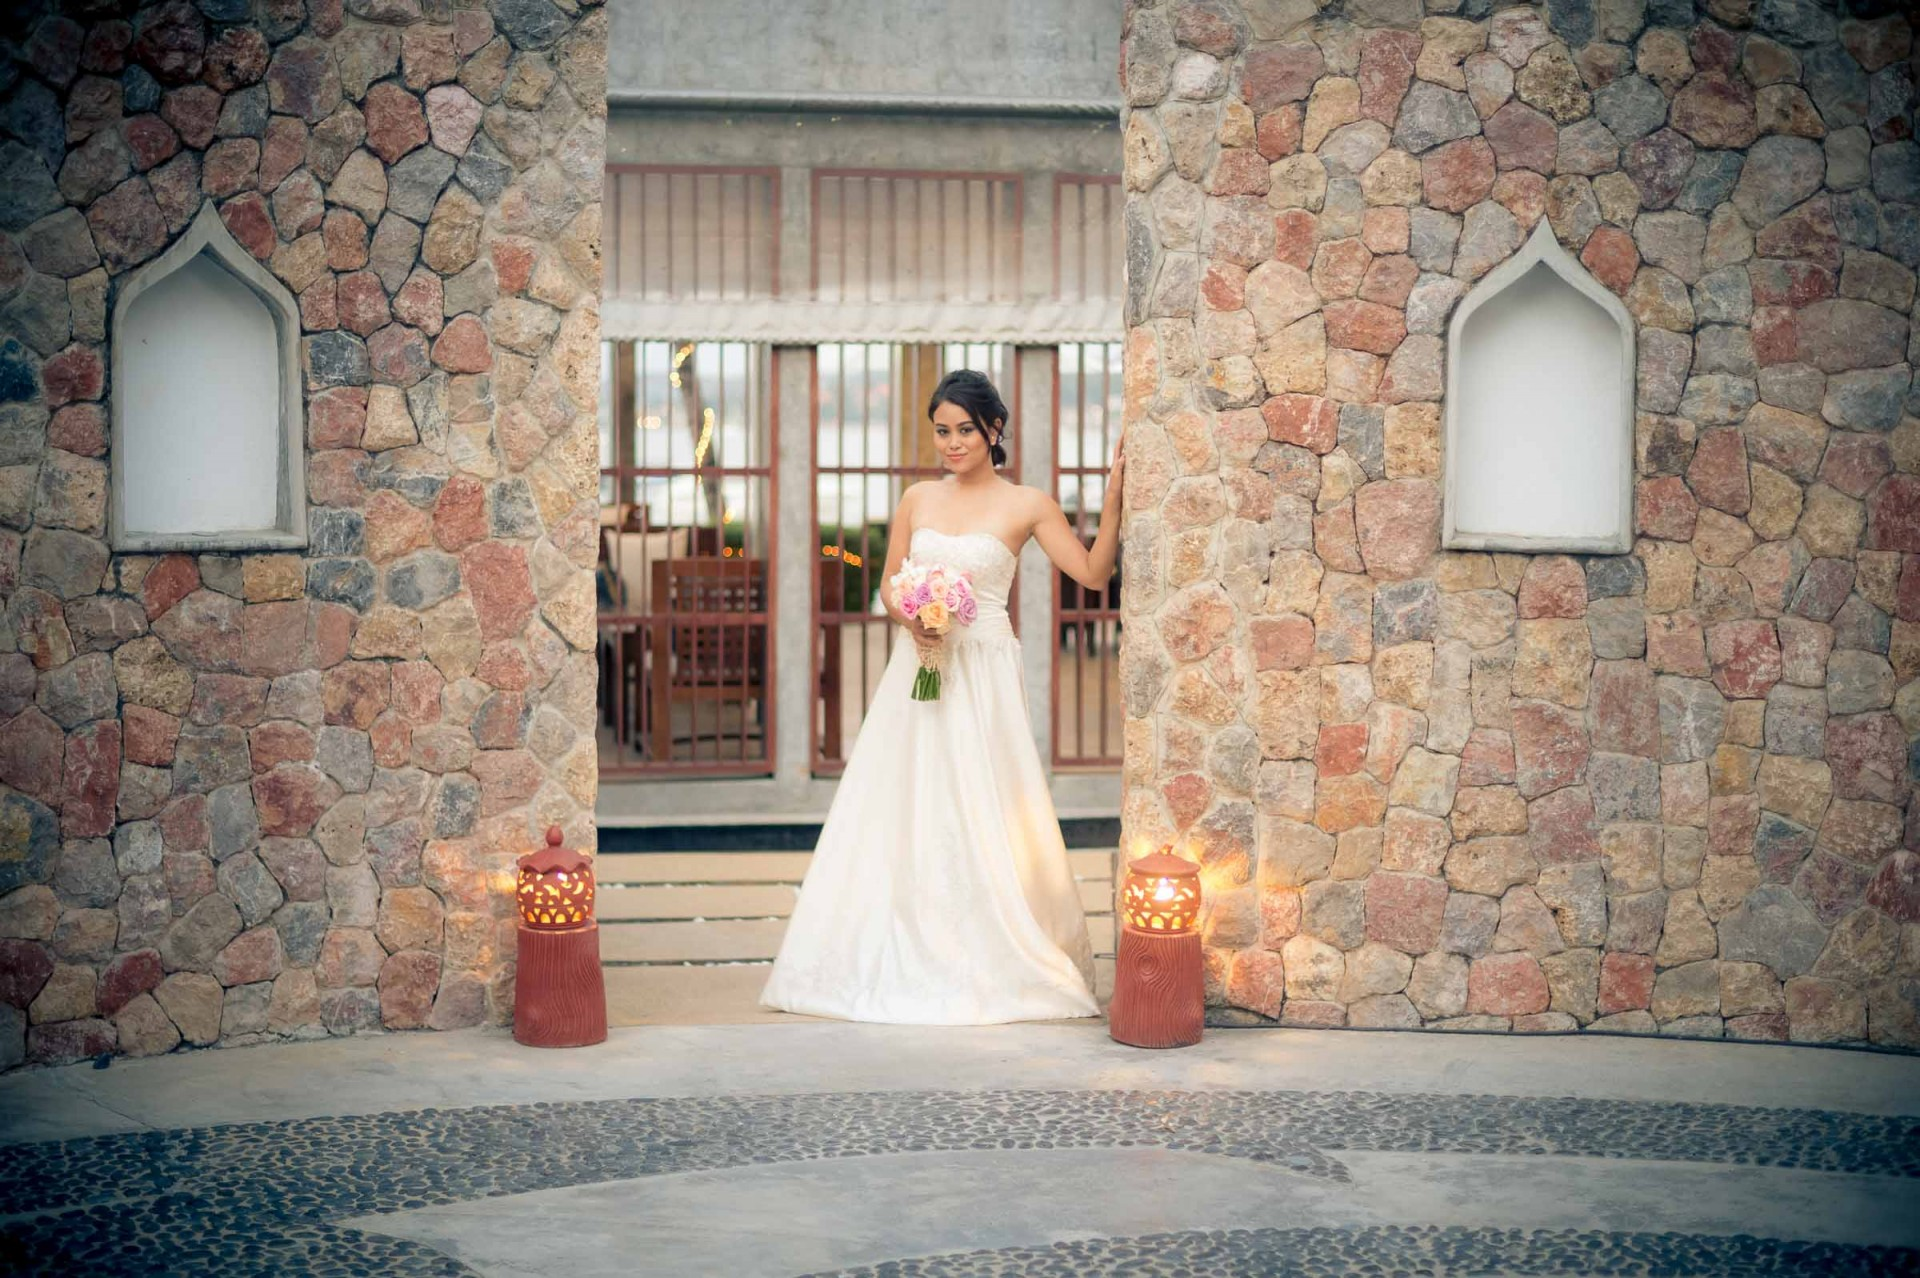 Thailand Based Wedding Photographer |   Destination Wedding Photographer Thailand